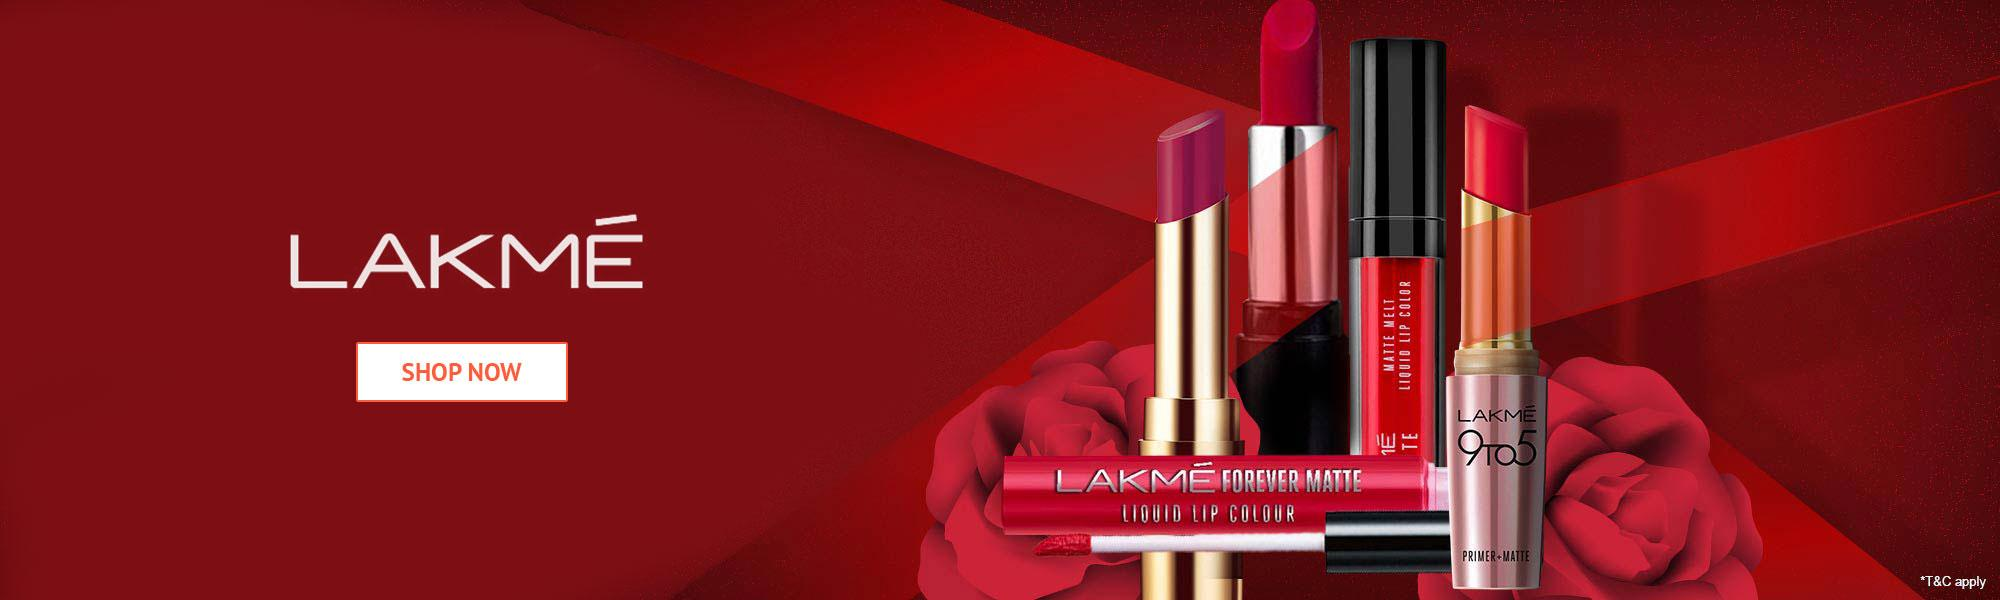 Lakme Offer